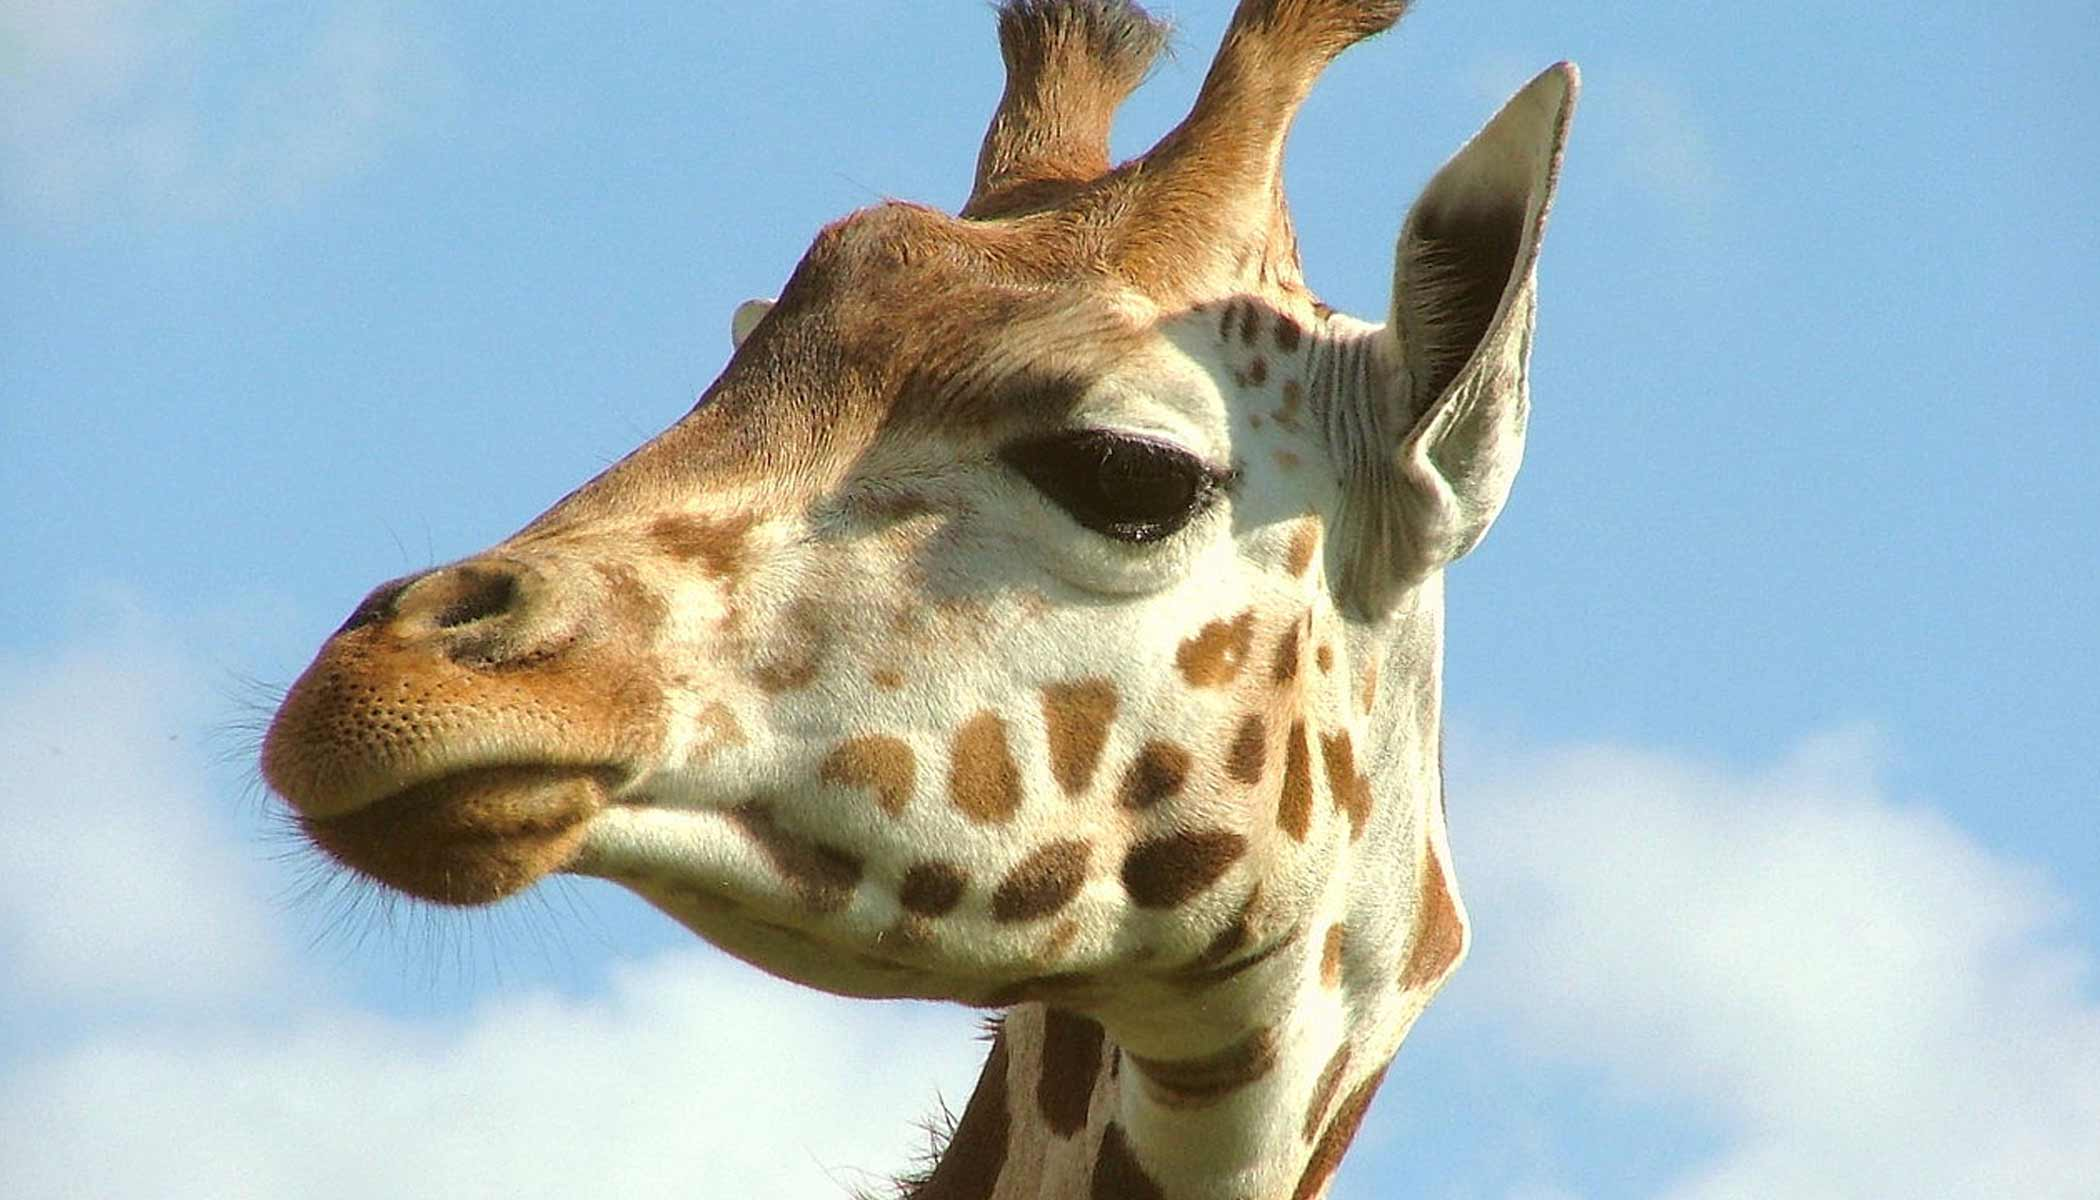 image: Whipsnade Zoo